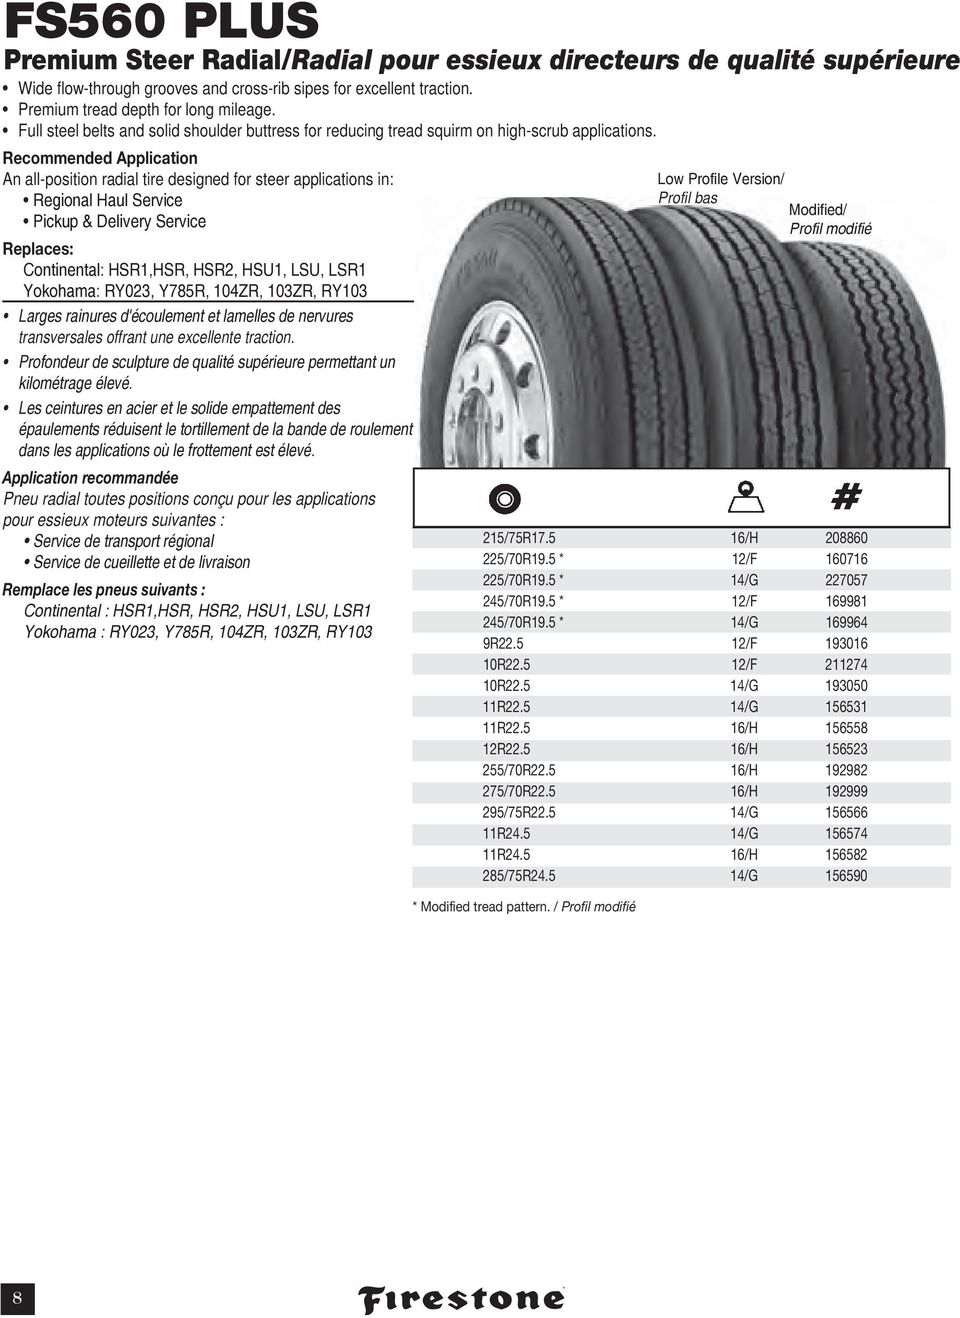 An all-position radial tire designed for steer applications in: Regional Haul Service Pickup & Delivery Service Continental: HSR1,HSR, HSR2, HSU1, LSU, LSR1 Yokohama: RY023, Y785R, 104ZR, 103ZR,